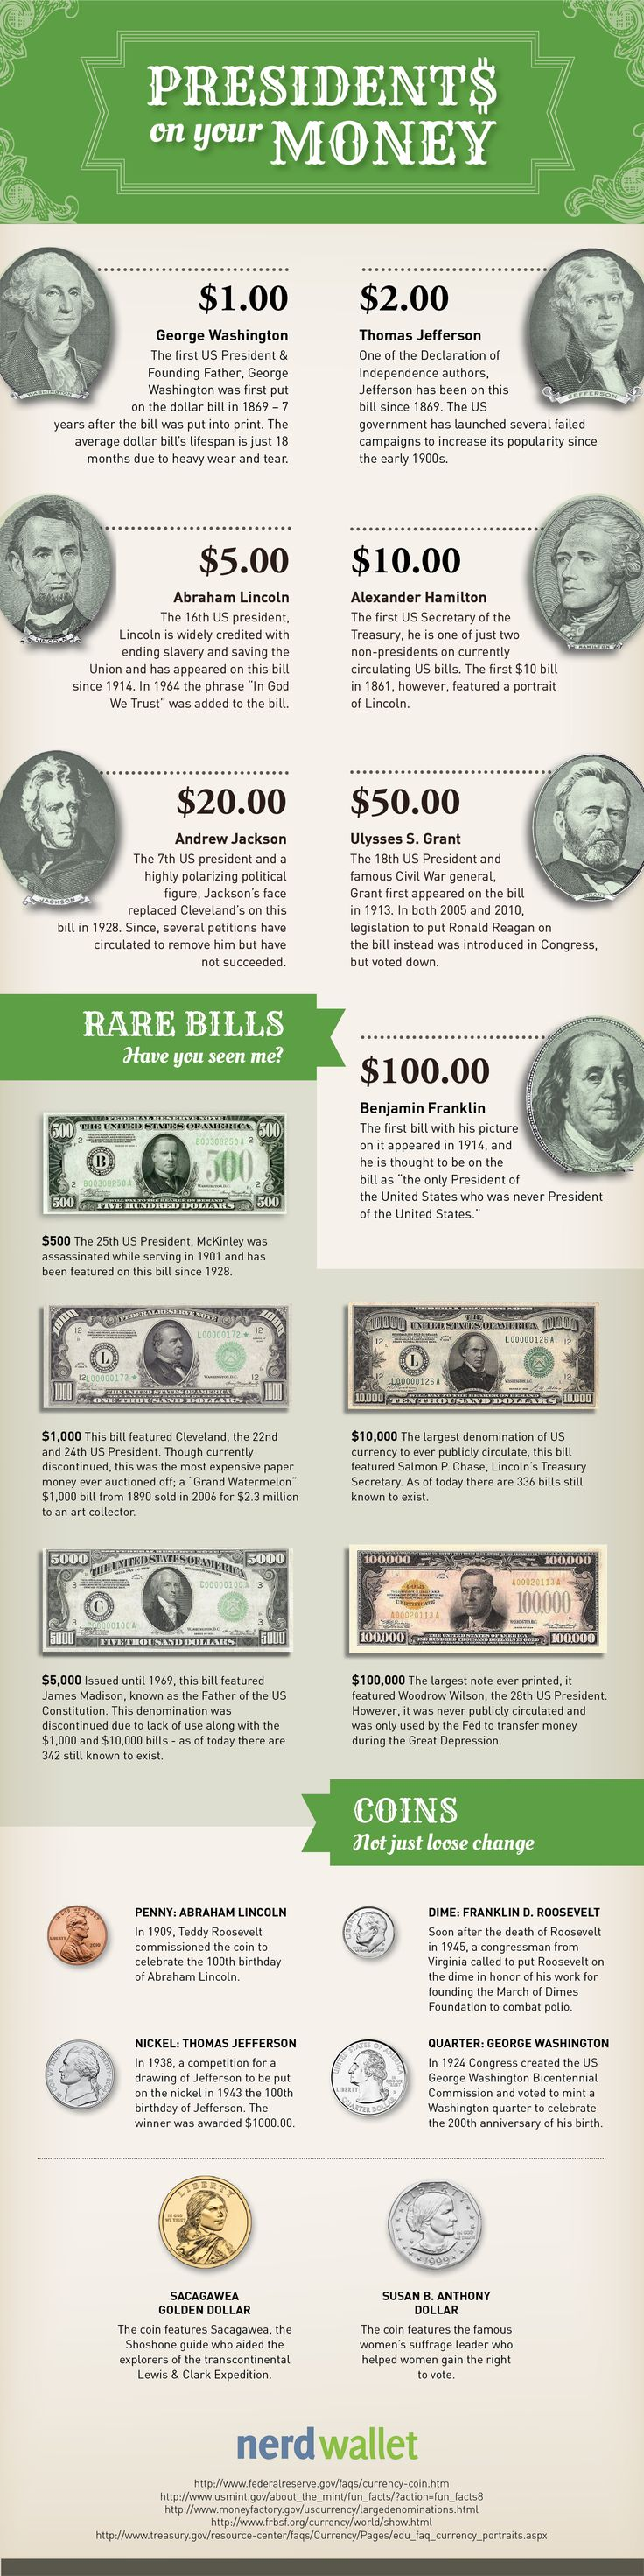 Presidents On Your Money | Visual.ly